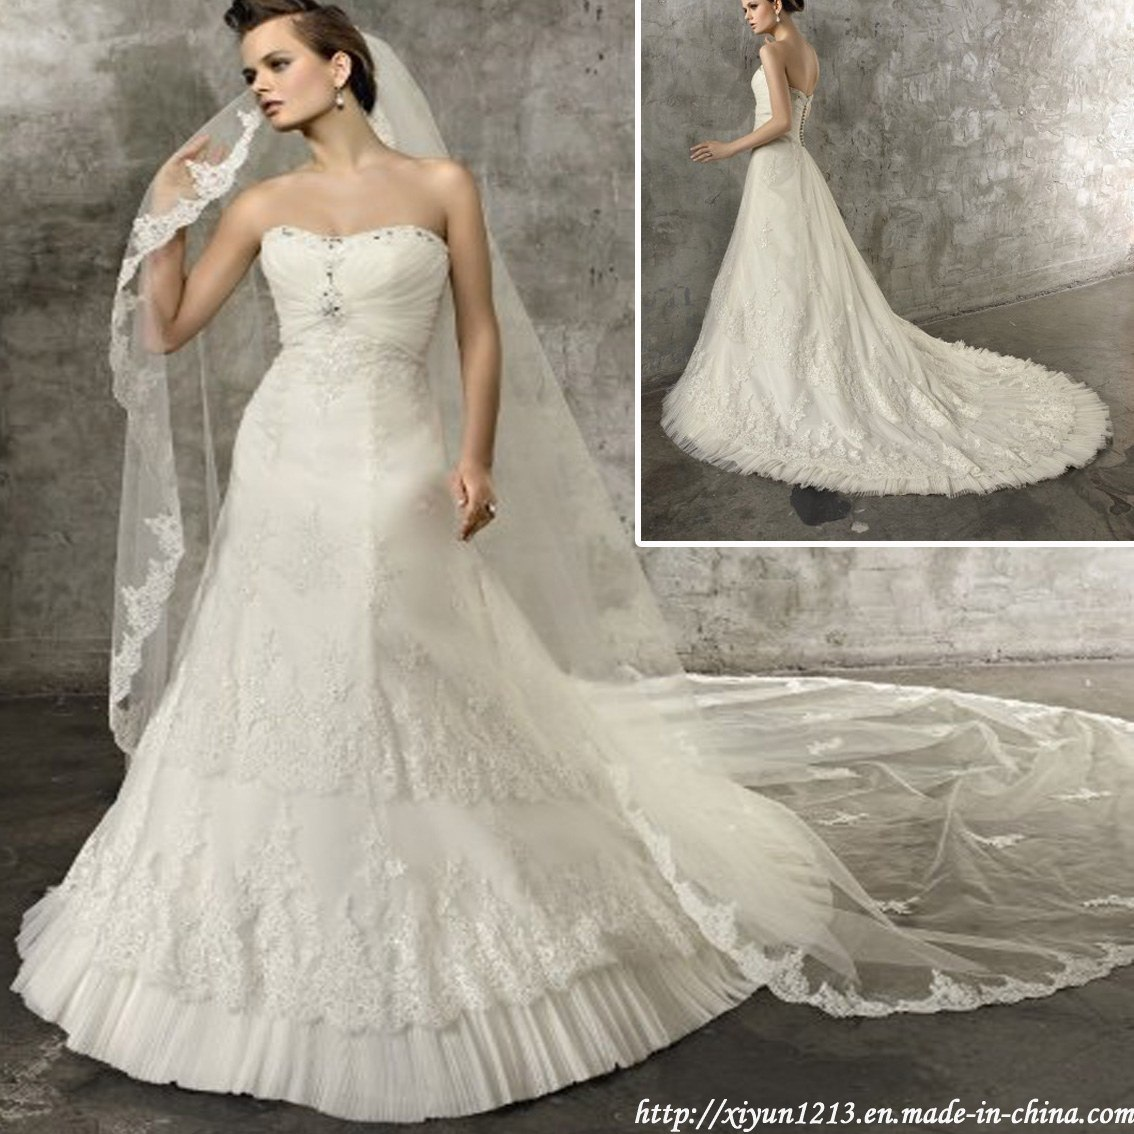 Wedding Gowns In China: China Latest Wedding Dress/Bridal Dress (angela-197